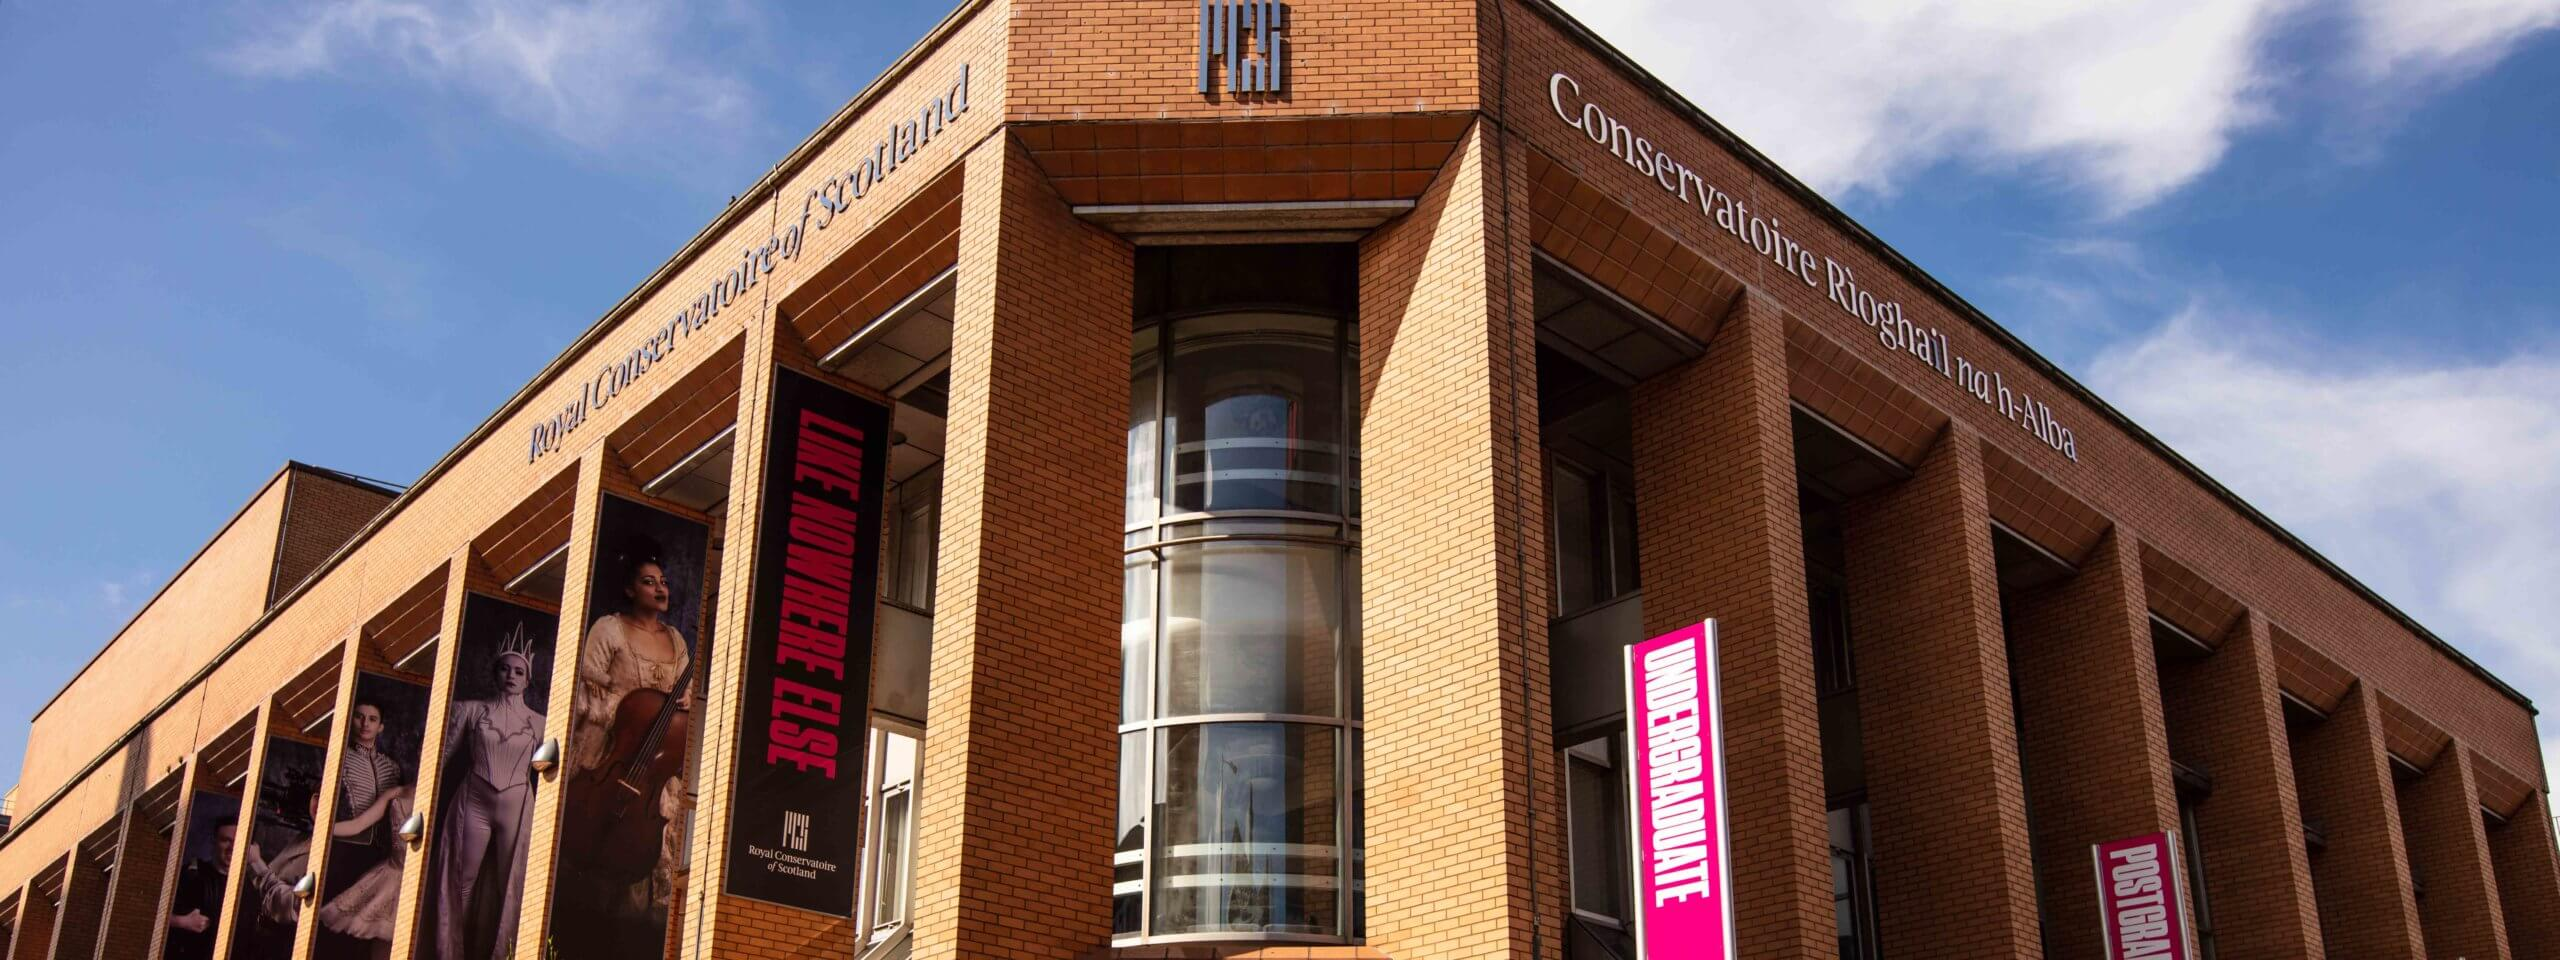 Royal Conservatoire of Scotland appoints six new Governors Image